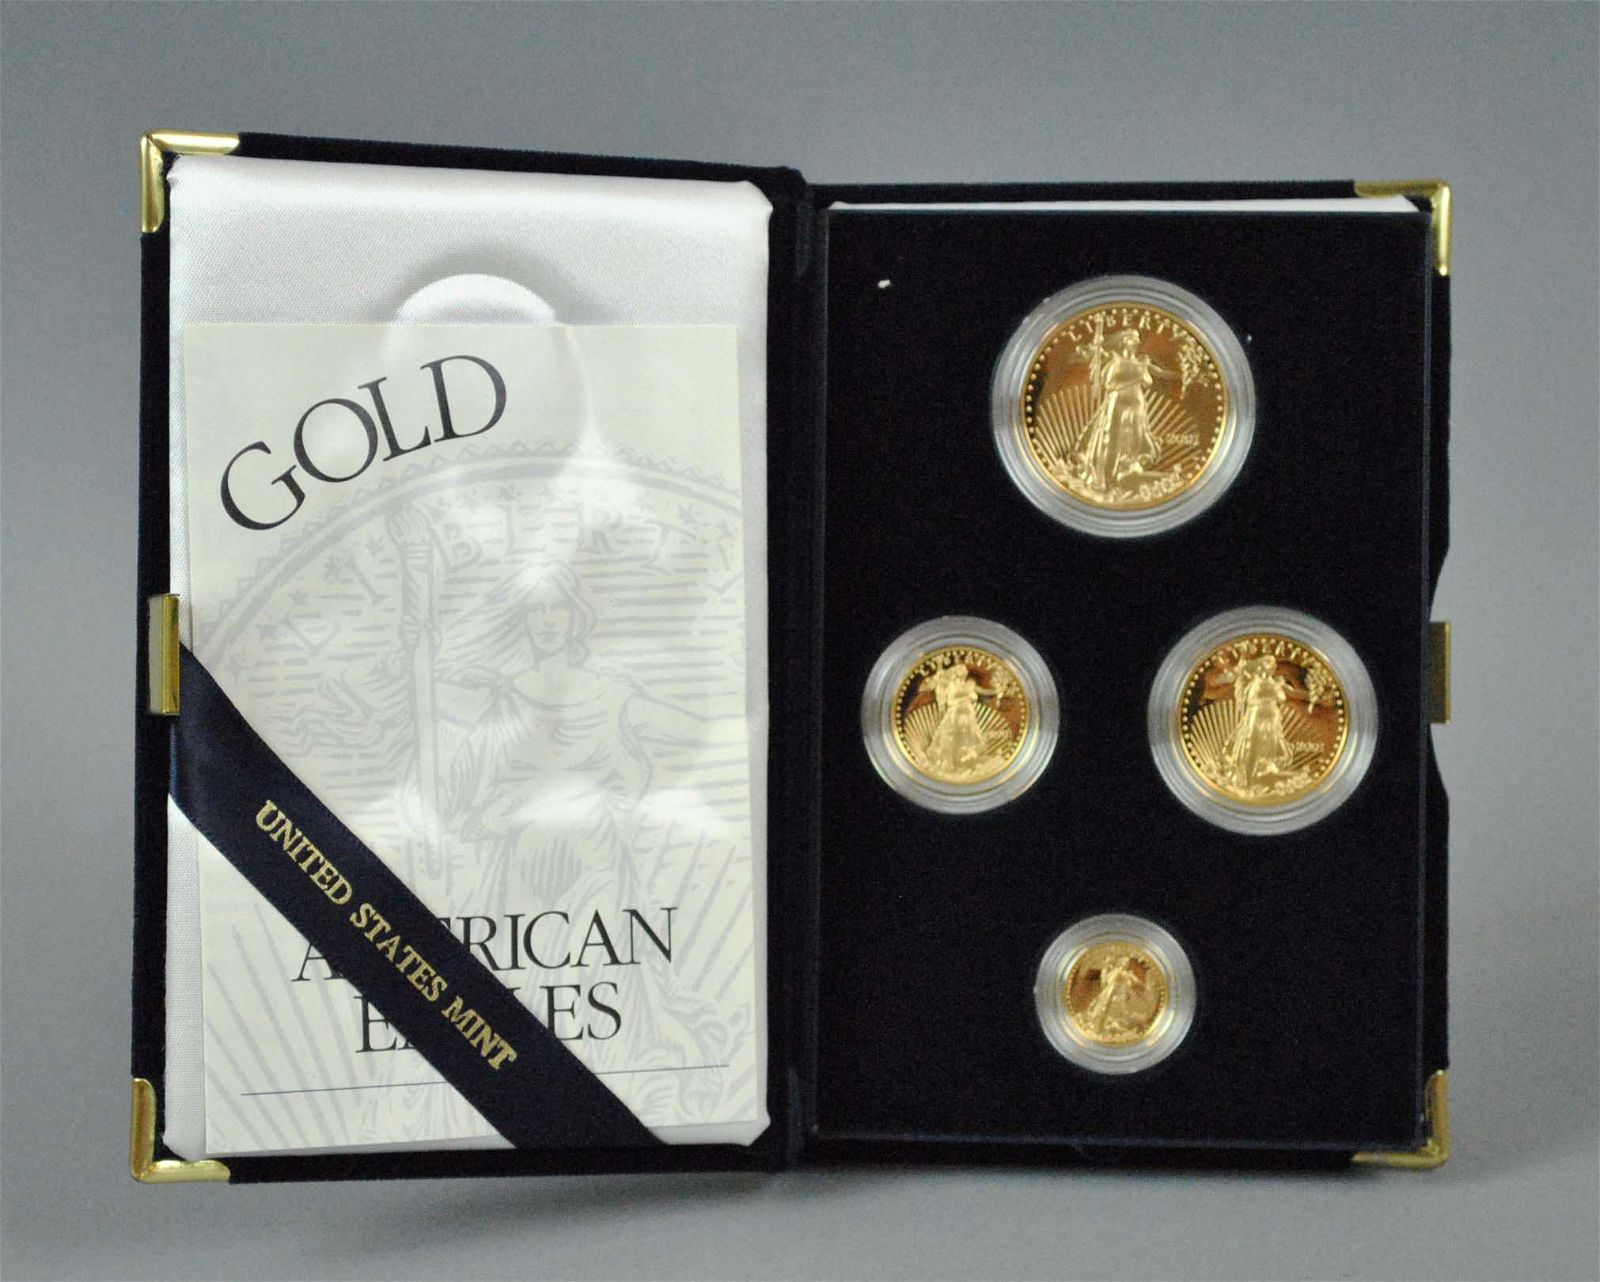 2001 AMERICAN EAGLE 4-COIN GOLD PROOF SET